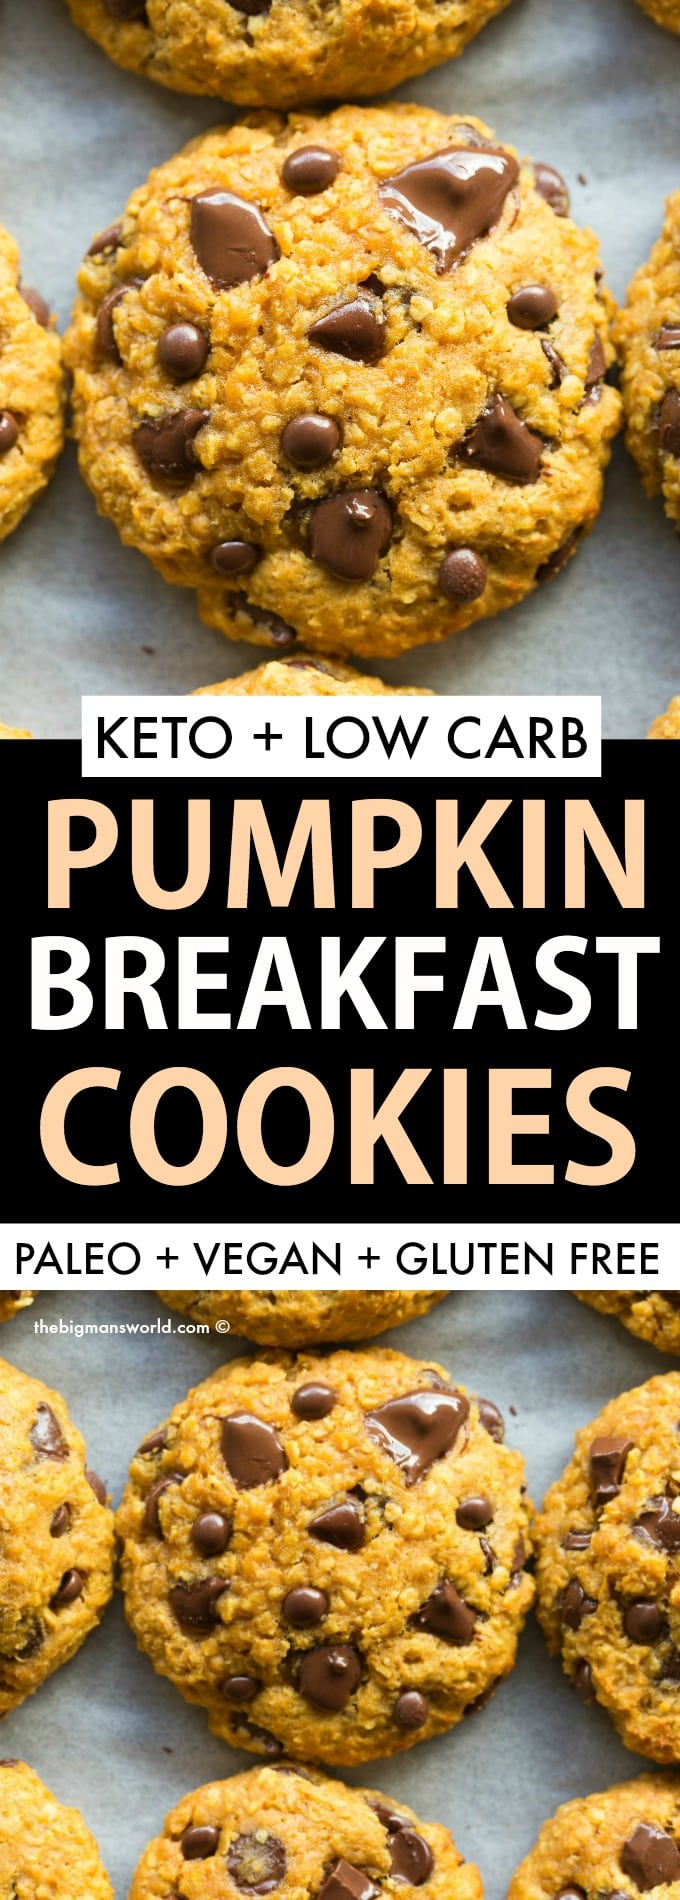 Paleo Pumpkin Breakfast Cookies Recipe